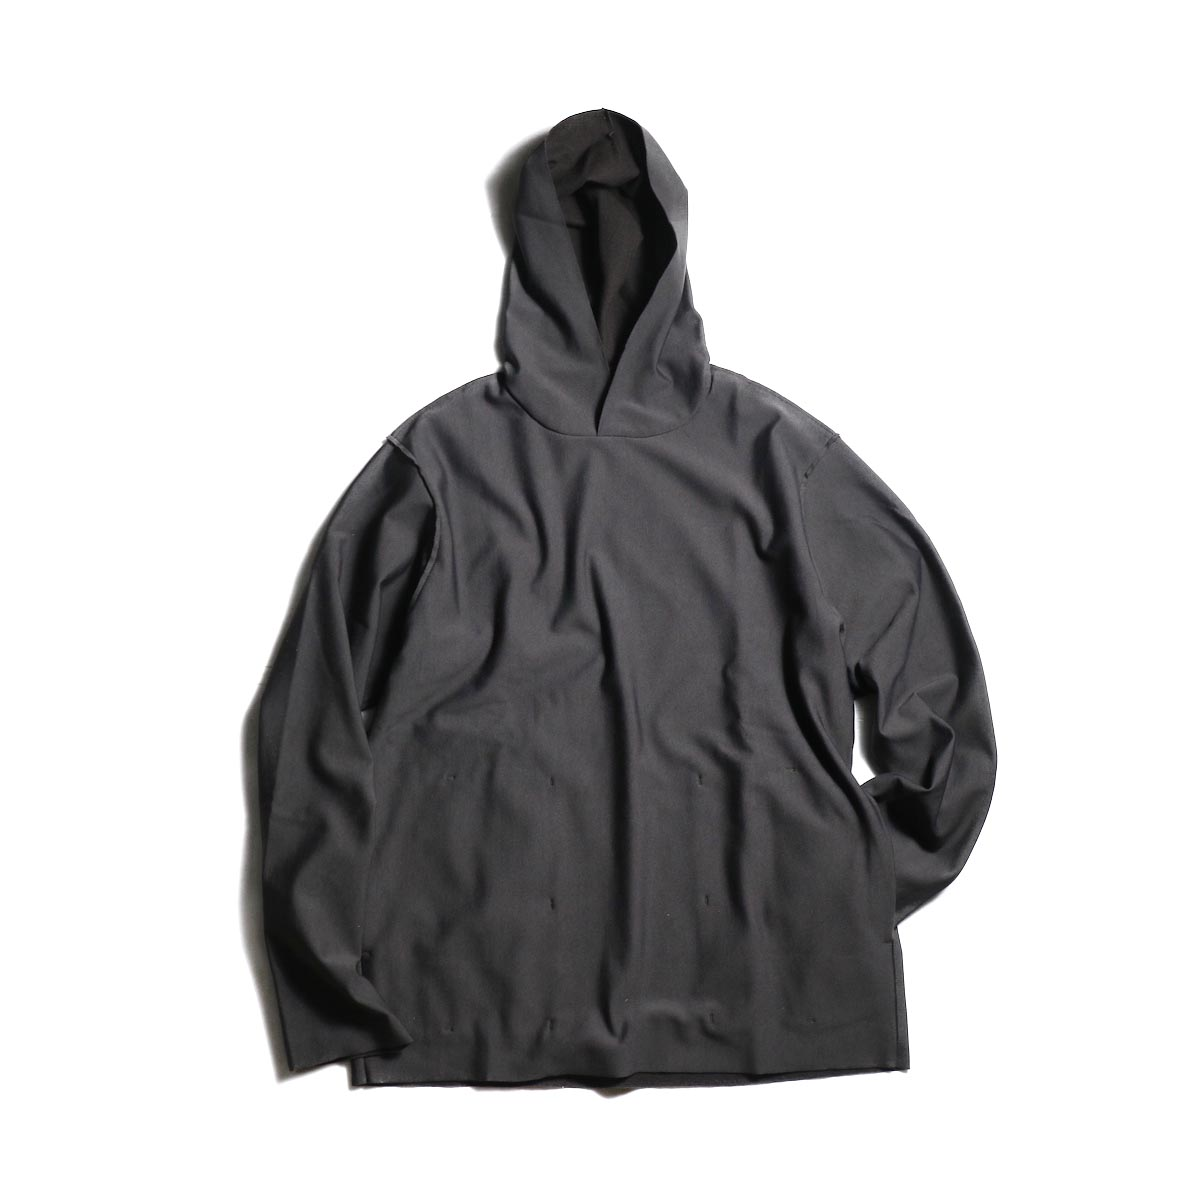 FUTURE PRIMITIVE / FP PULLOVER FLEECE HOODIE (Charcoal)